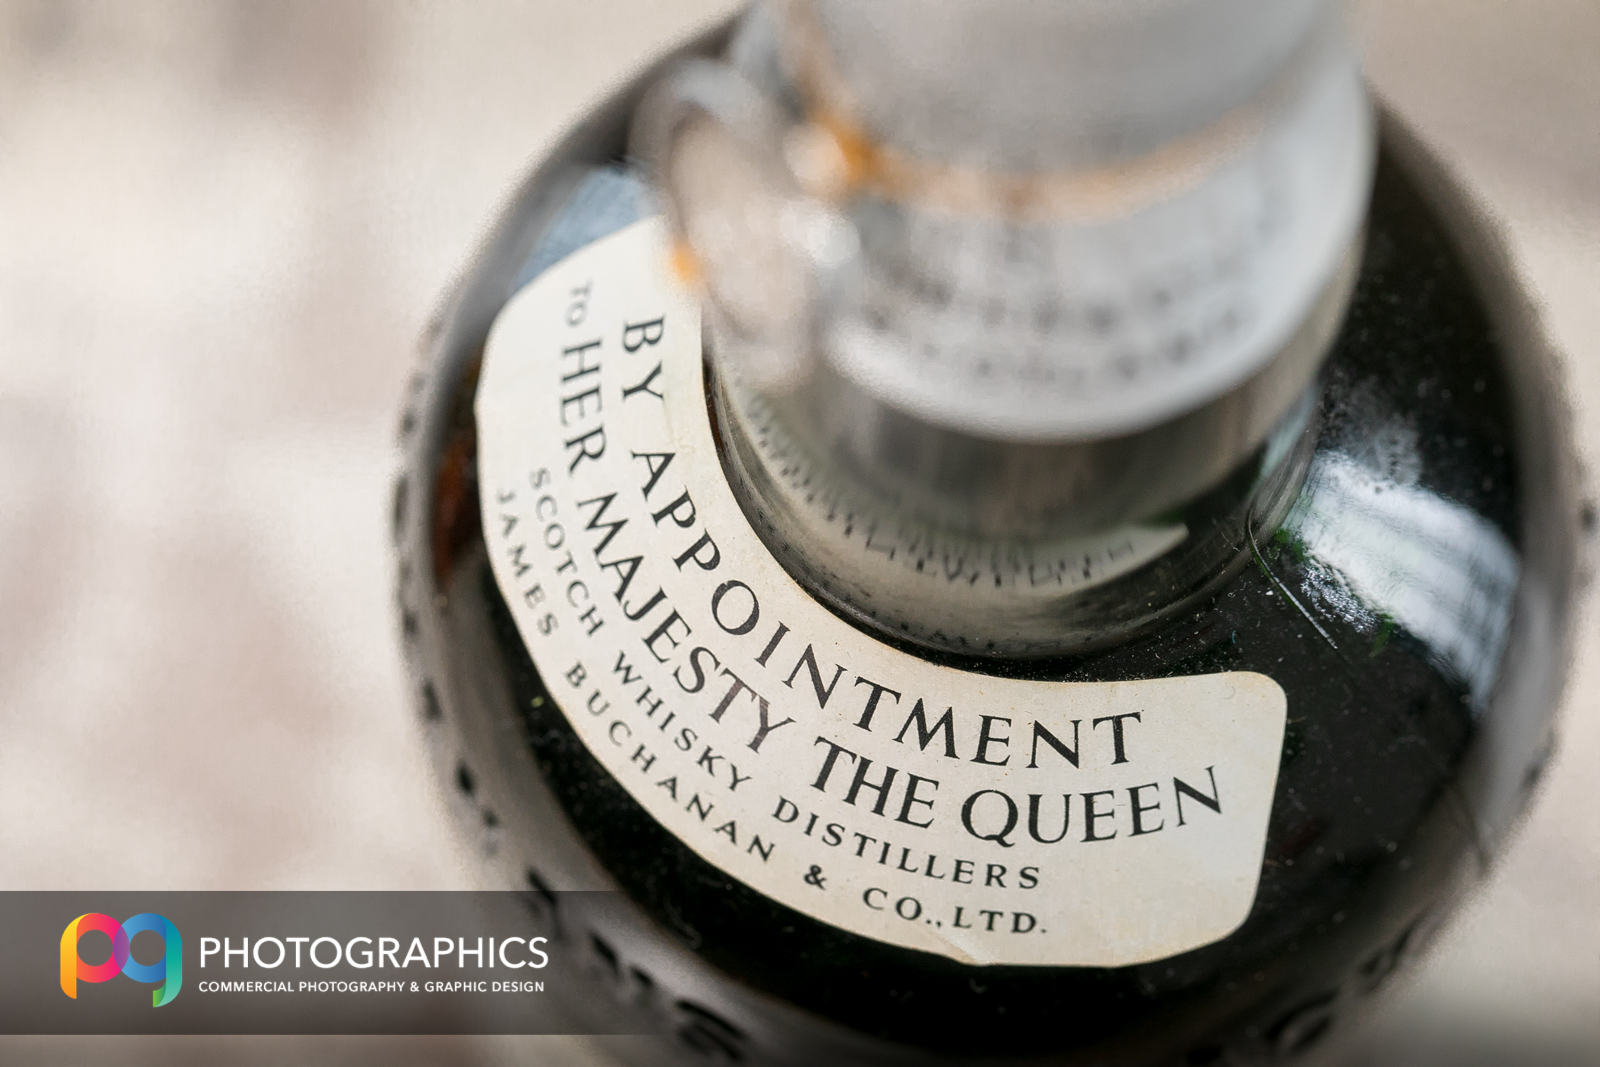 product-whisky-photography-glasgow-edinburgh-scotland-3.jpg